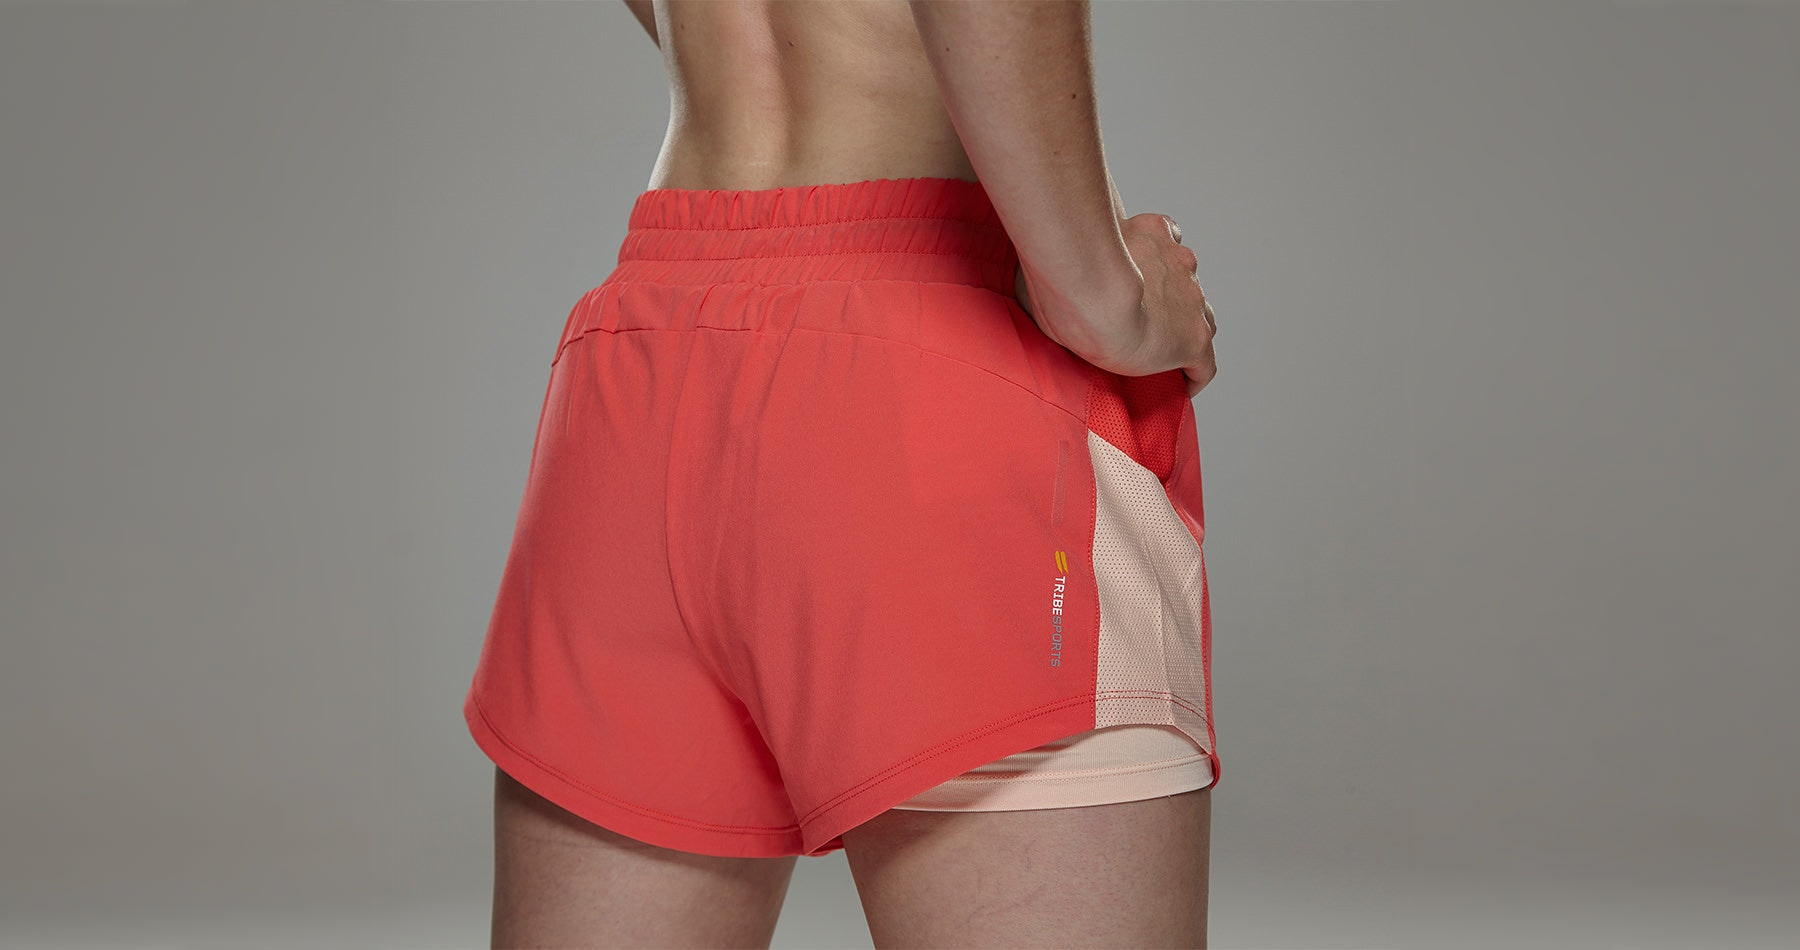 Tribesports Core Women's 2-in-1 Running Shorts Coral 4